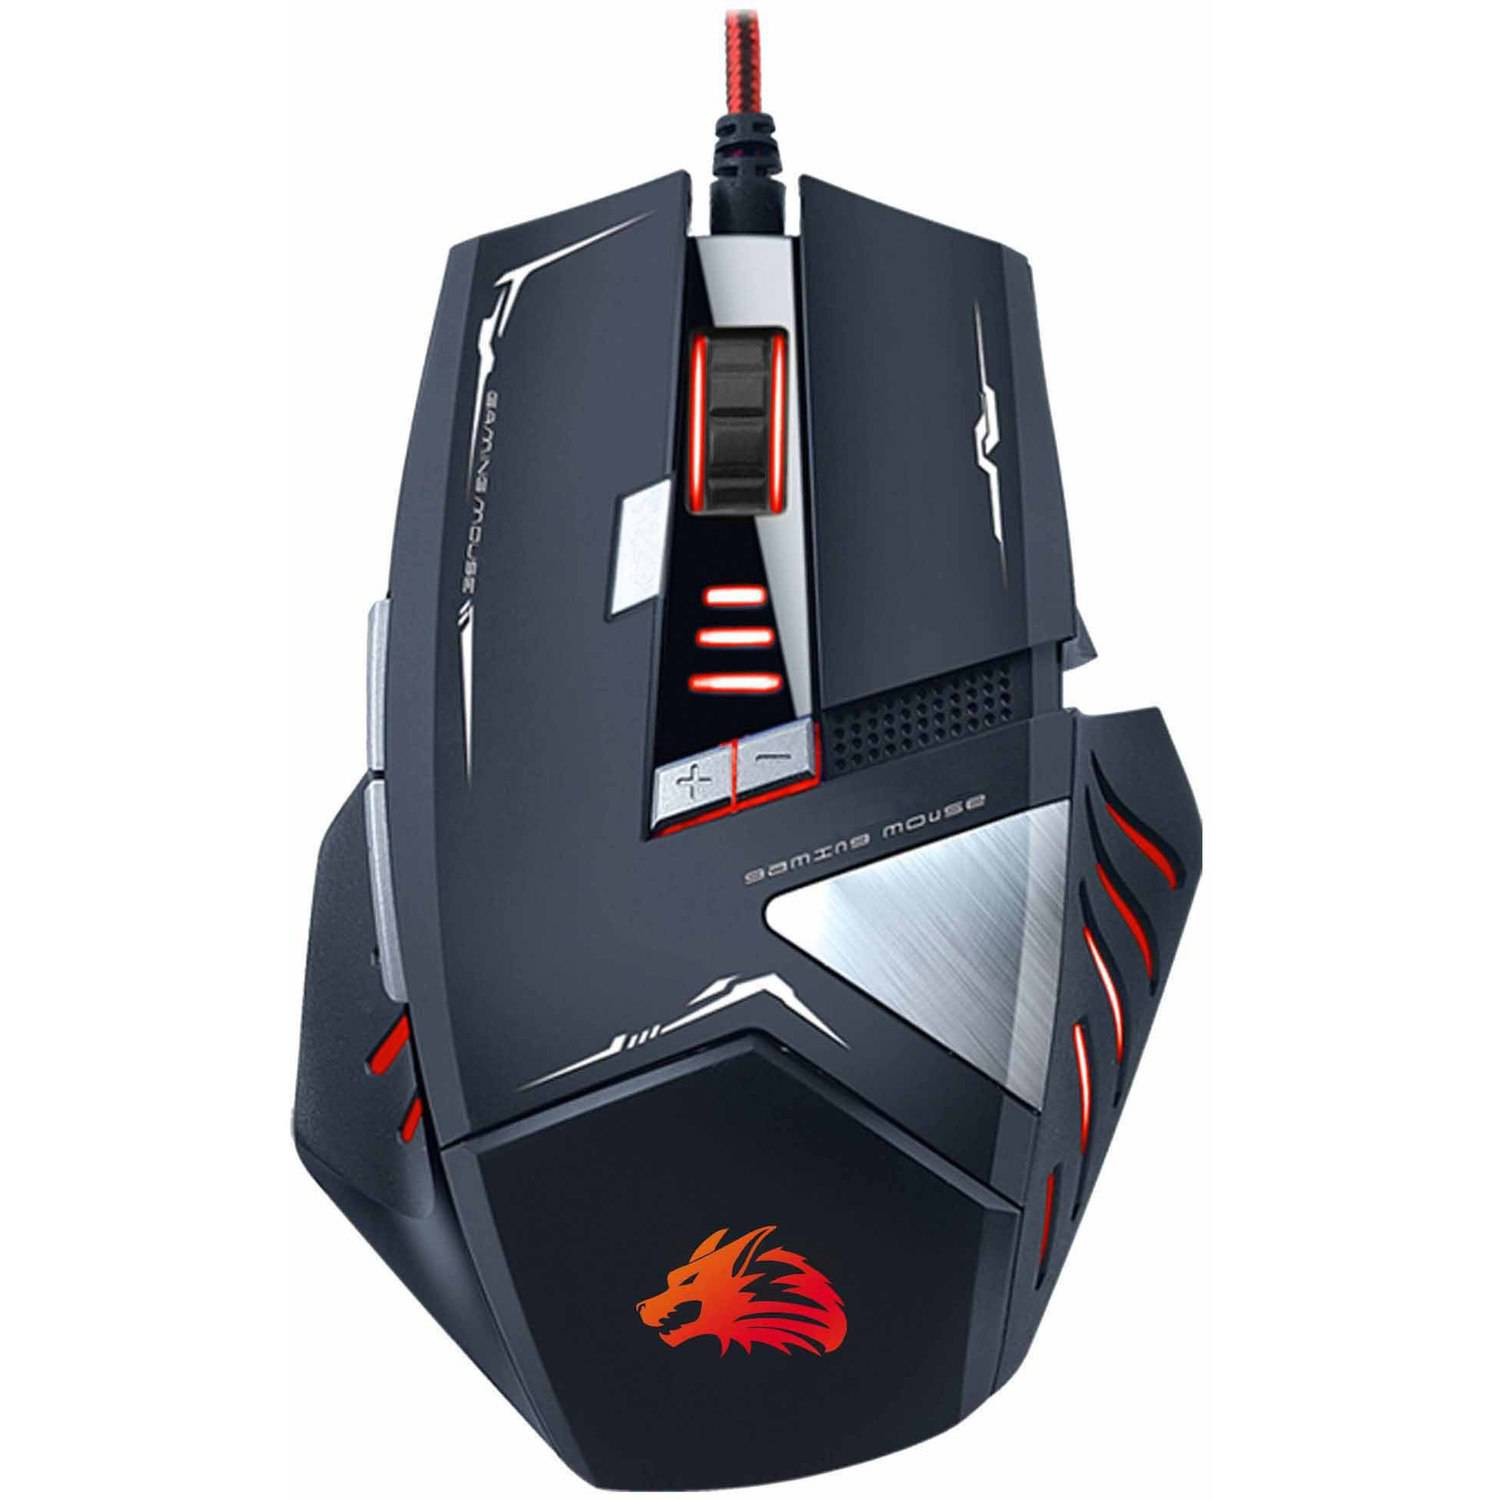 Rocksoul RSMS-00215 8D Optical Gaming Mouse, Black